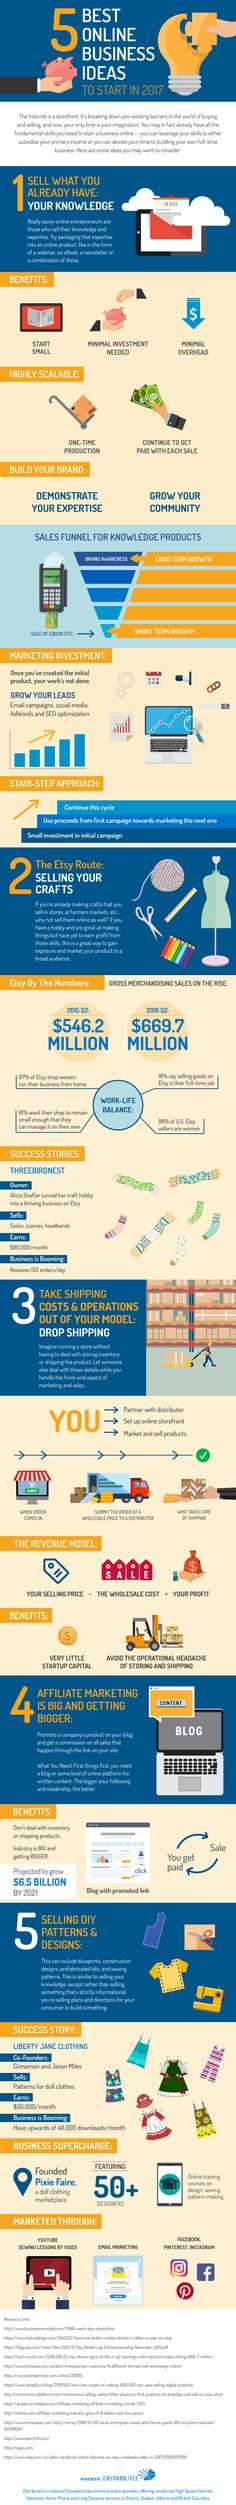 5 Best Online Business Ideas To Start In 2017 #Infographic #Business